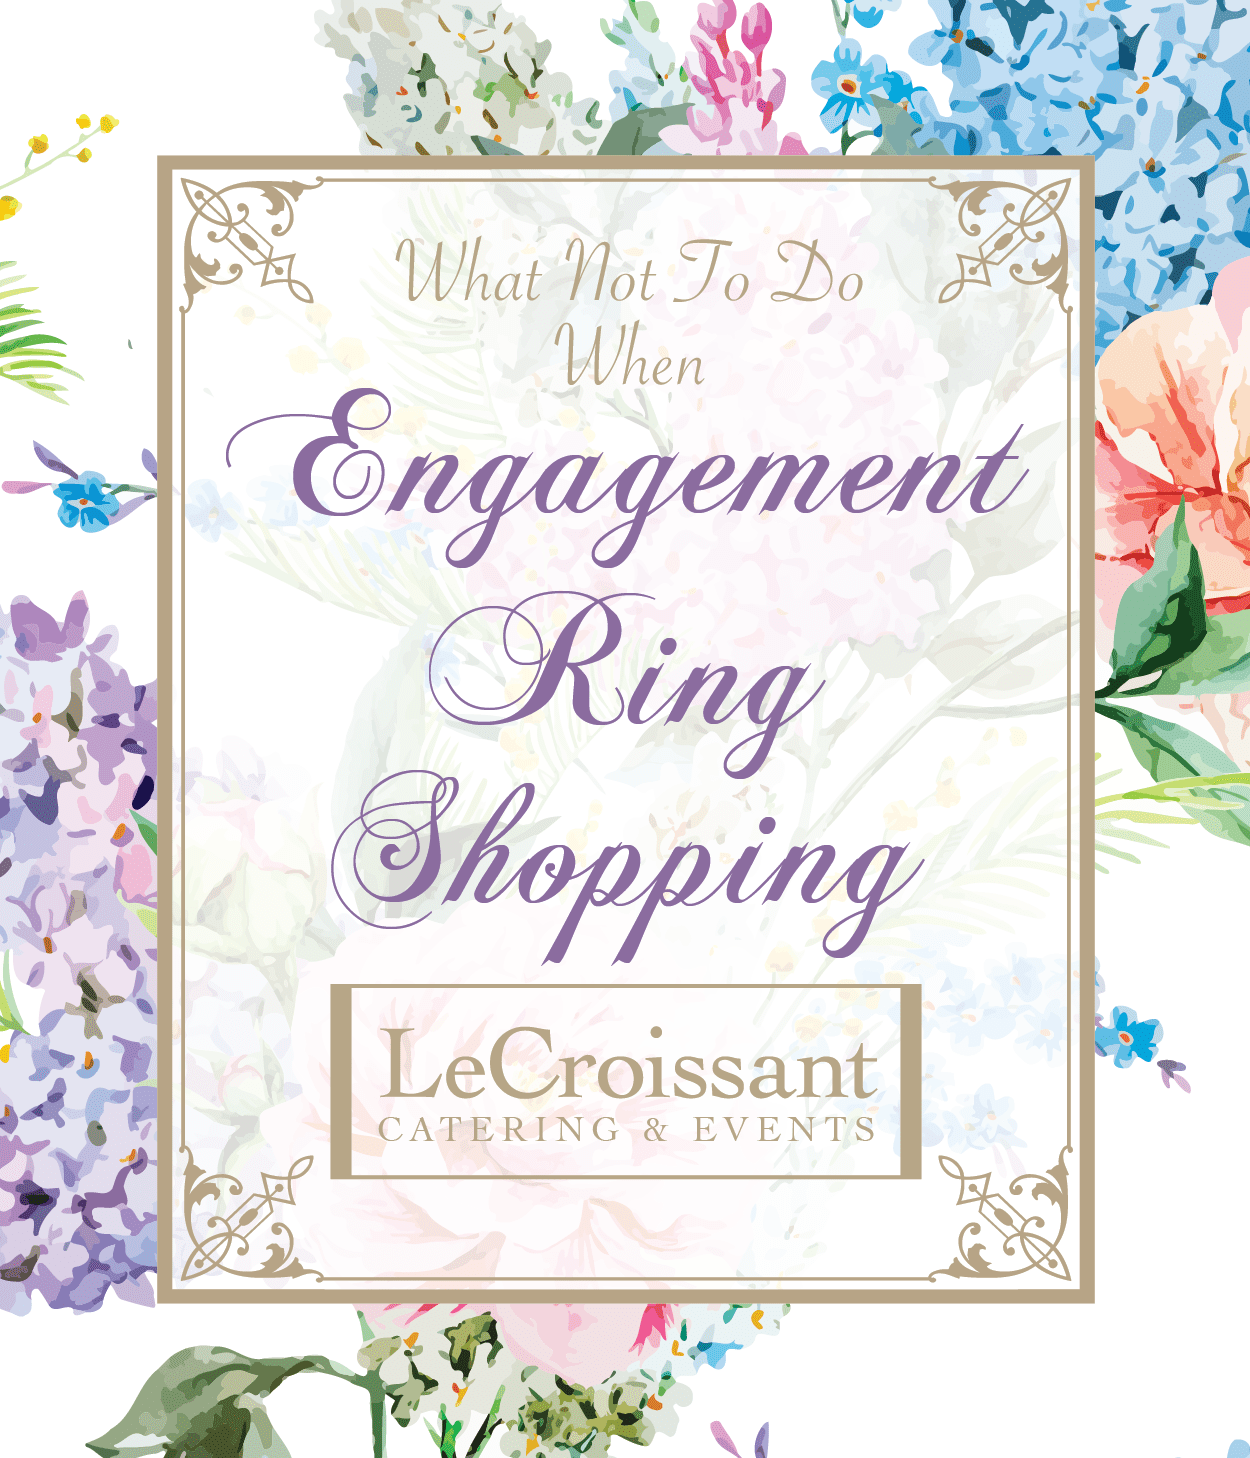 Engagement ring shopping advice from the groom. With Lux Catering and Events - Utah's premier wedding planners and caterers engagement ring shopping What Not To Do When Engagement Ring Shopping wj engagementring 01